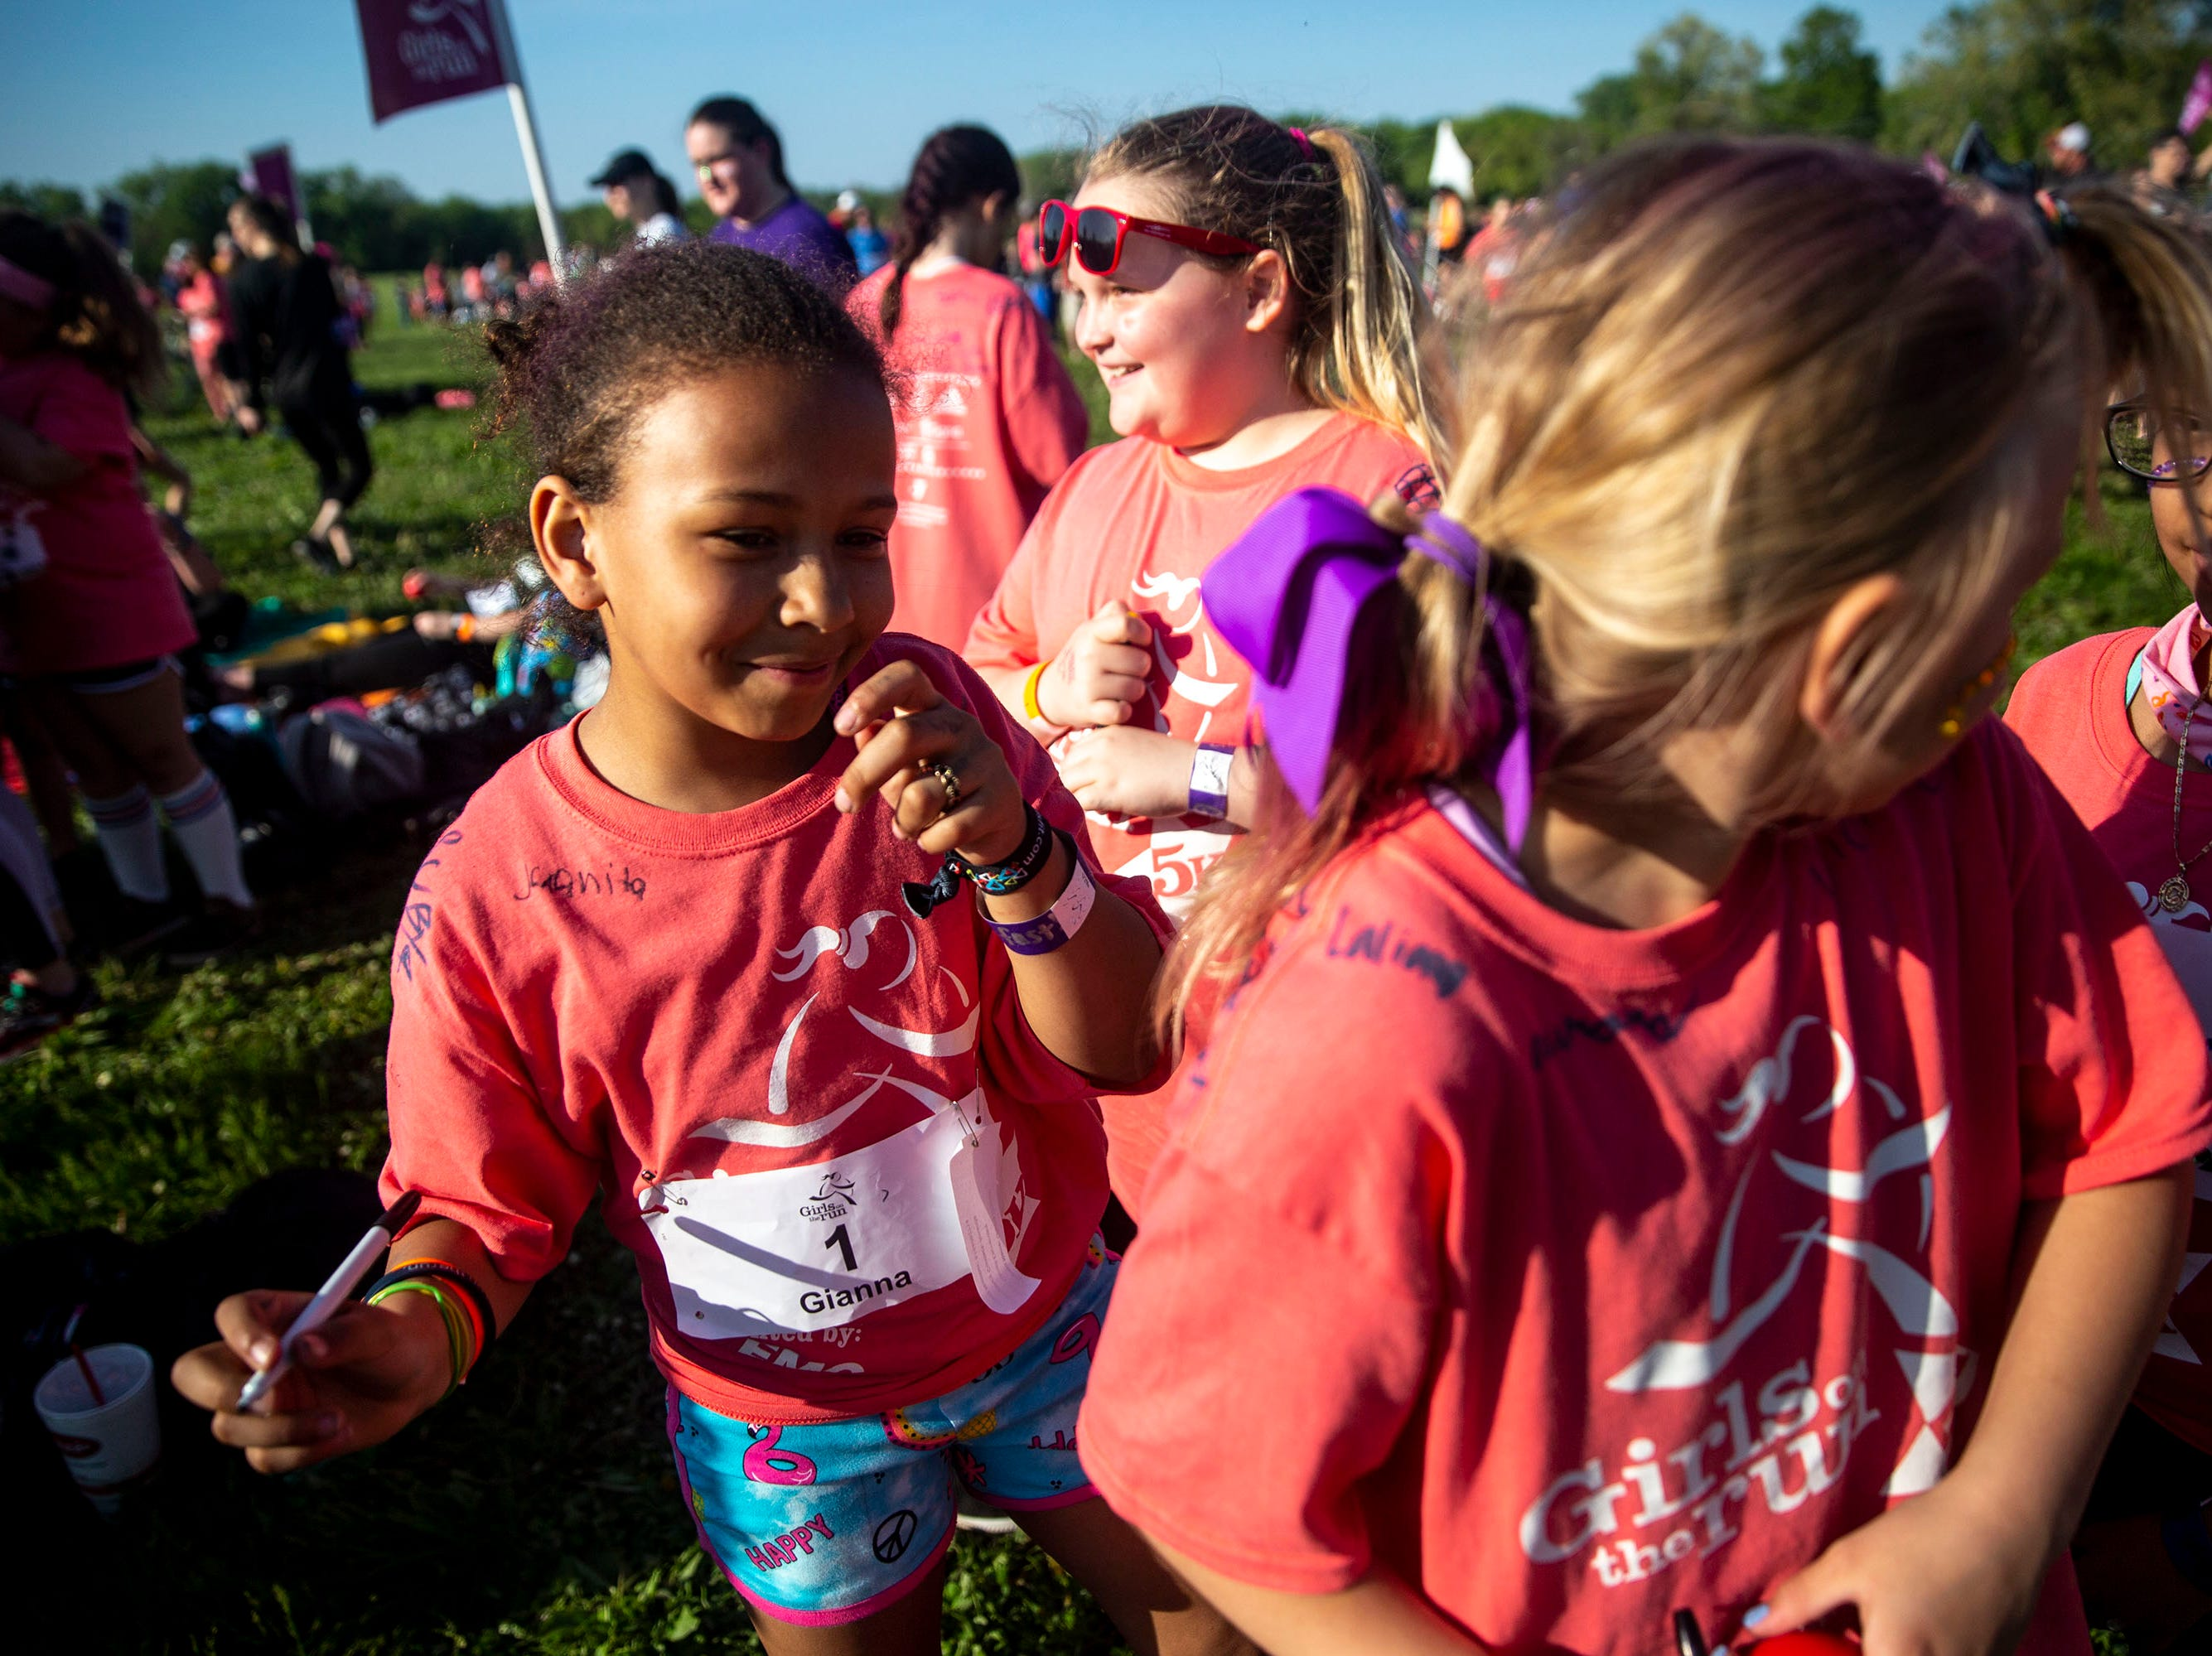 Gianna Graham, of Des Moines, autographs Ruby Thompson's, of Des Moines, shirt before the Girls on the Run celebration 5K on Tuesday, May 14, 2019, in Water Works Park in Des Moines.